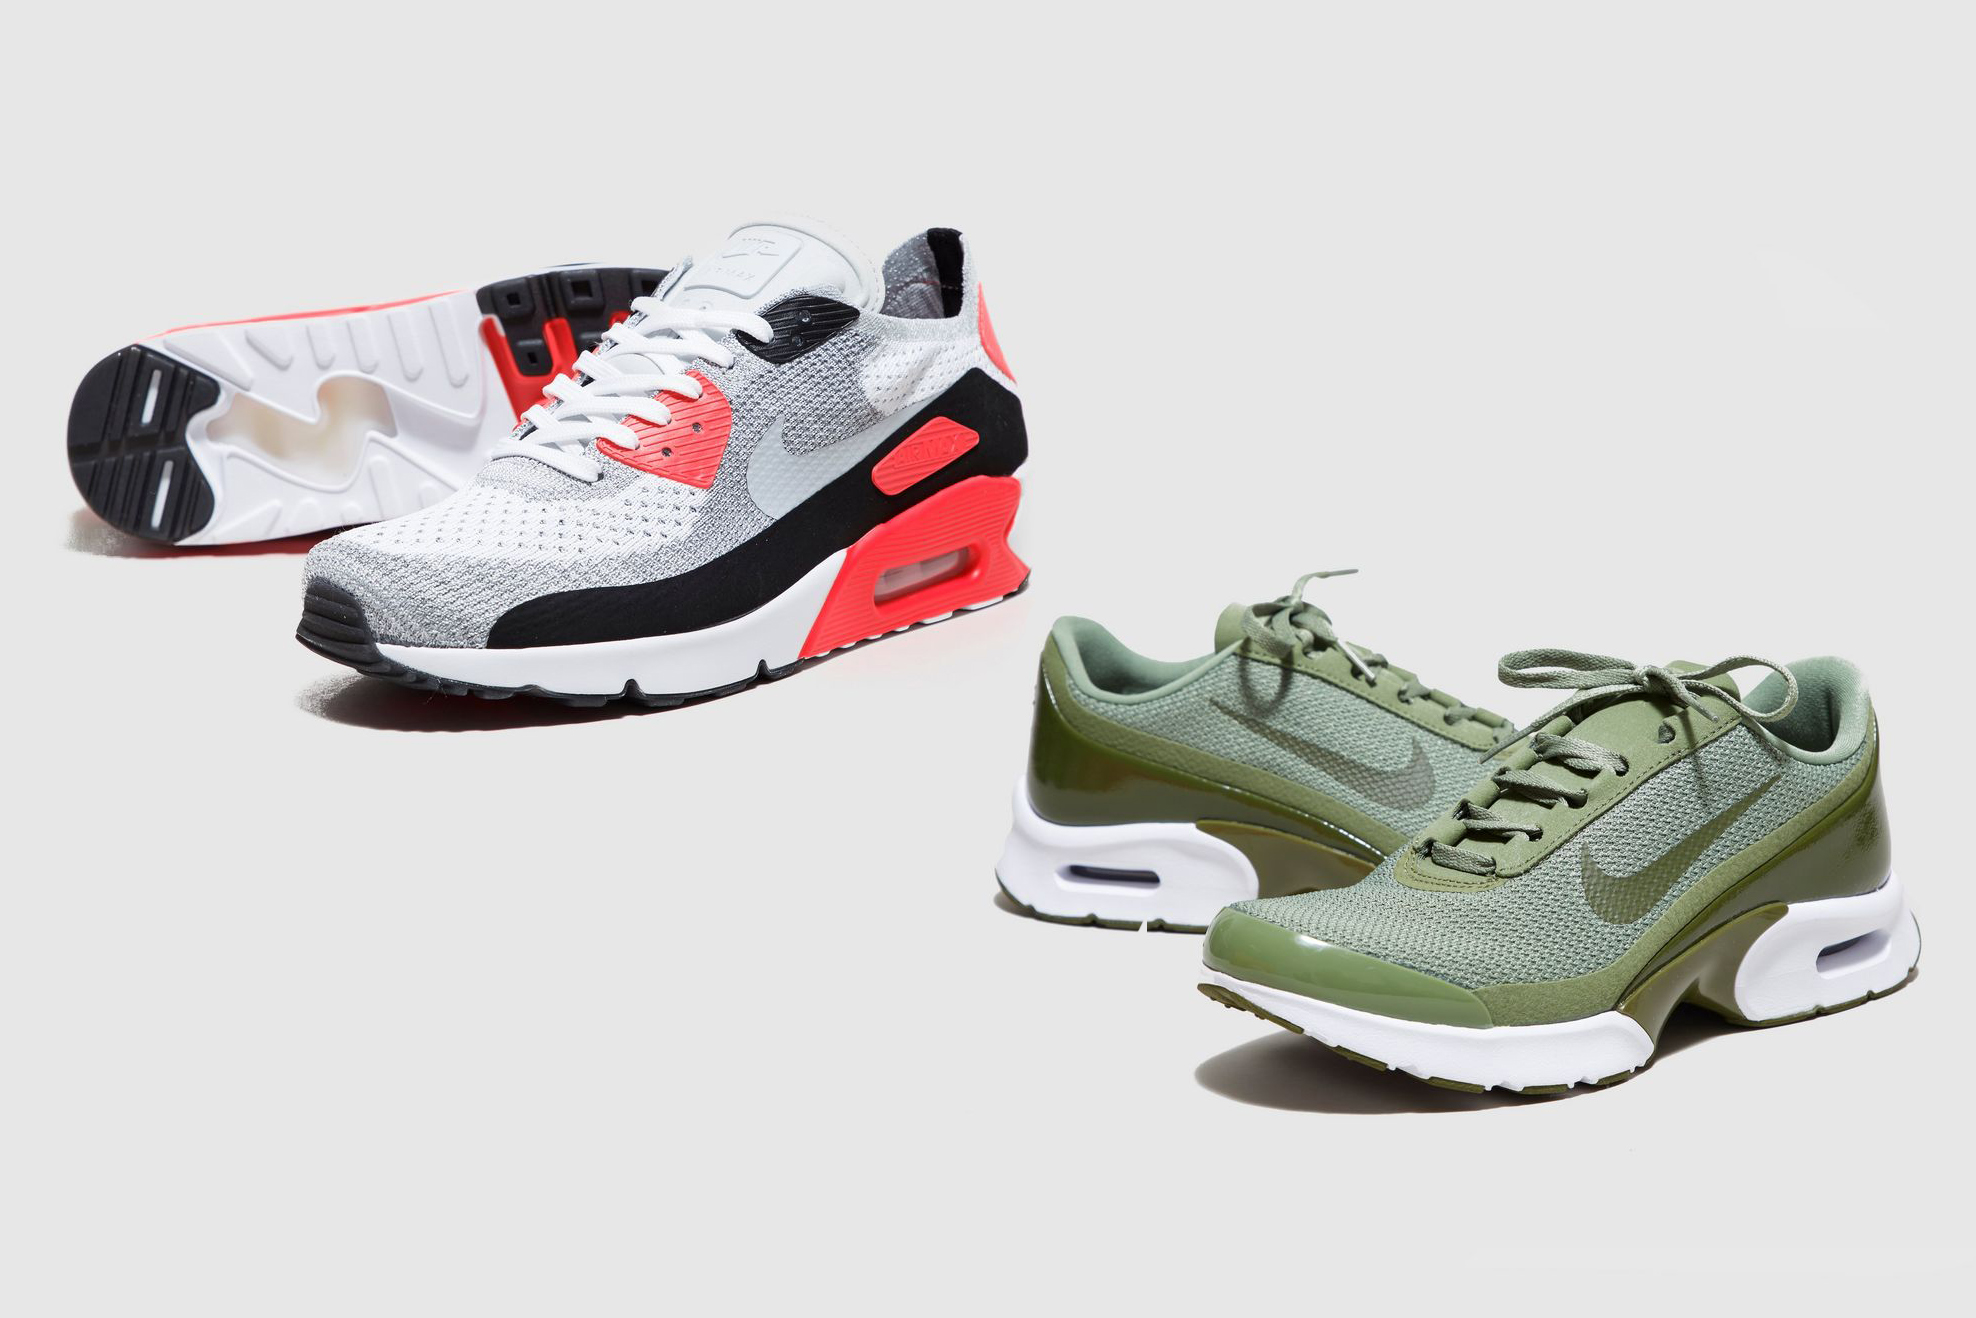 Latest Nike Air Max Selection at size?